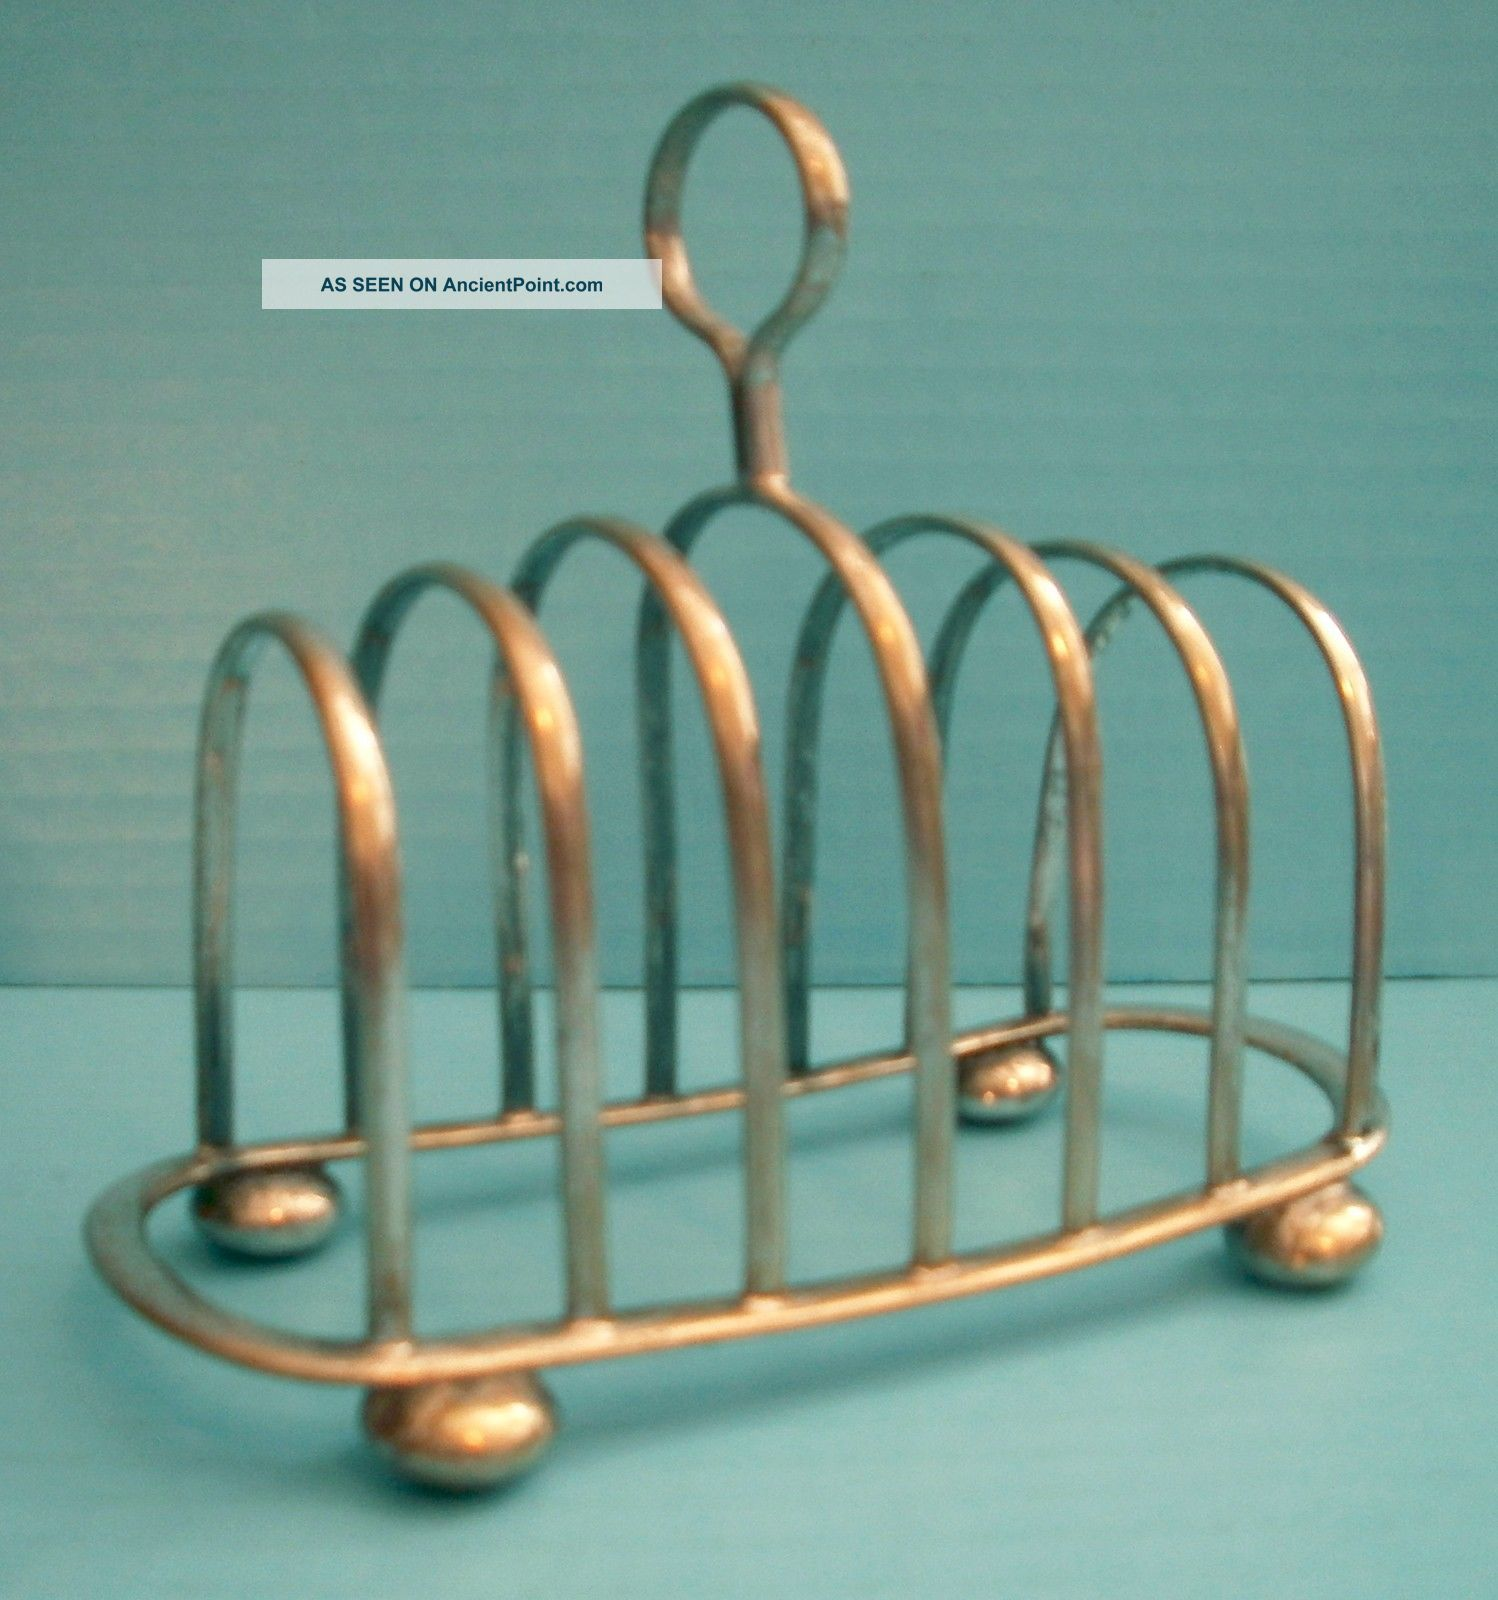 Antique Daniel & Arter Silverplate 7 Bar Toast Rack Letter Holder Espn D & A Other Antique Silverplate photo